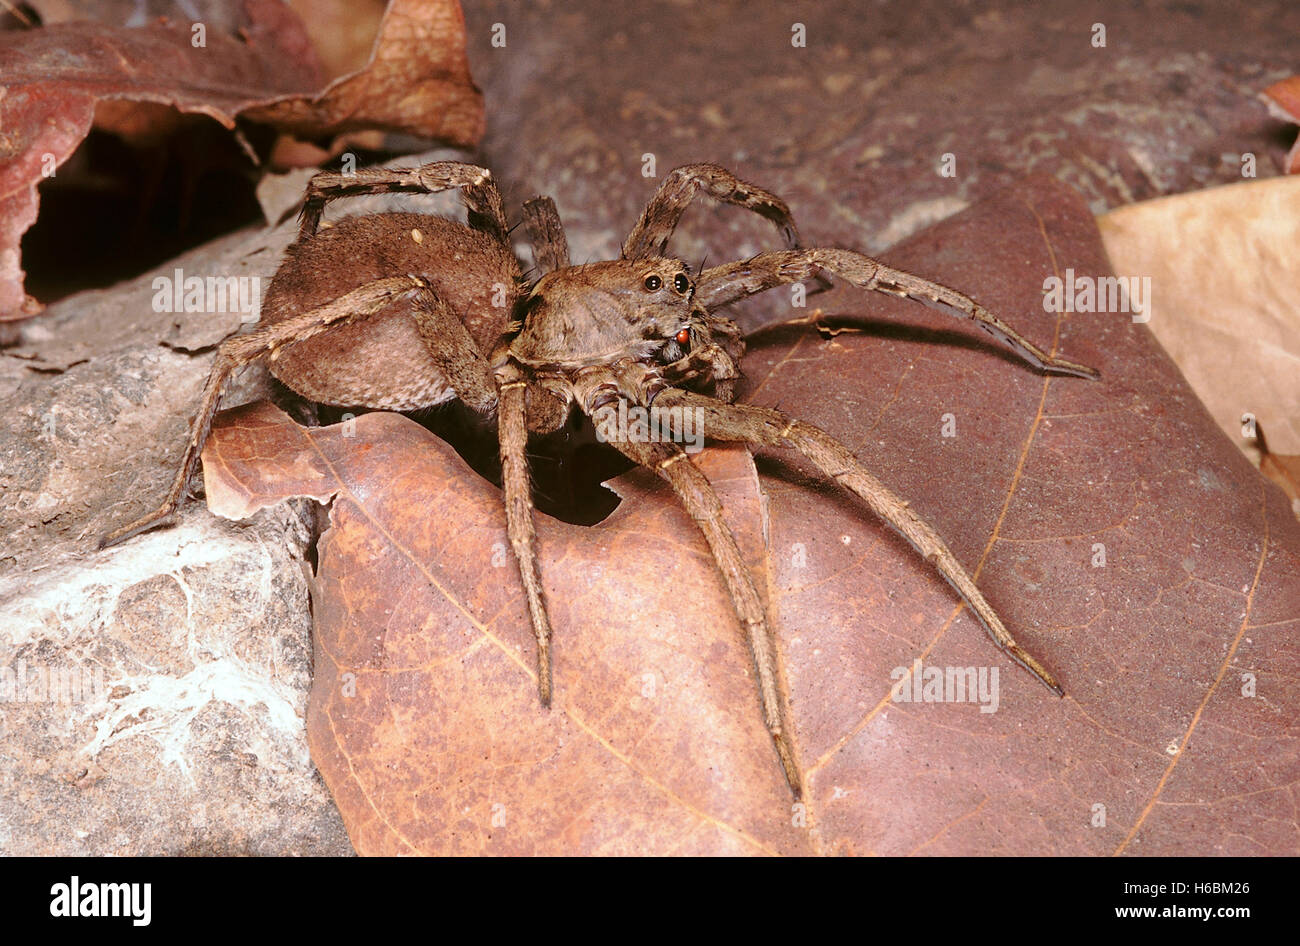 Wolf spider. A nocturnal spider which actively hunts for its prey on the ground instead of building a web. - Stock Image